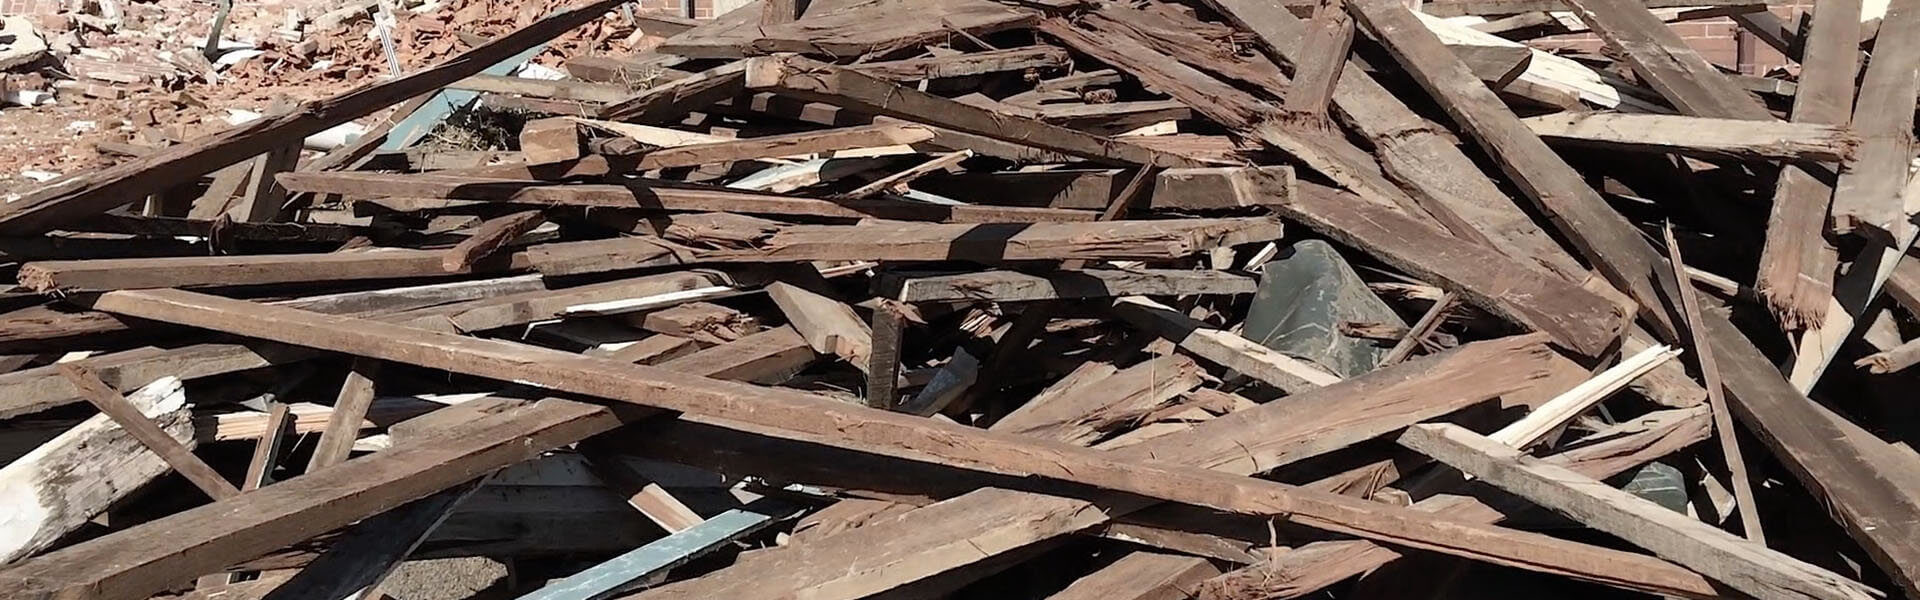 Rubble Removal Services